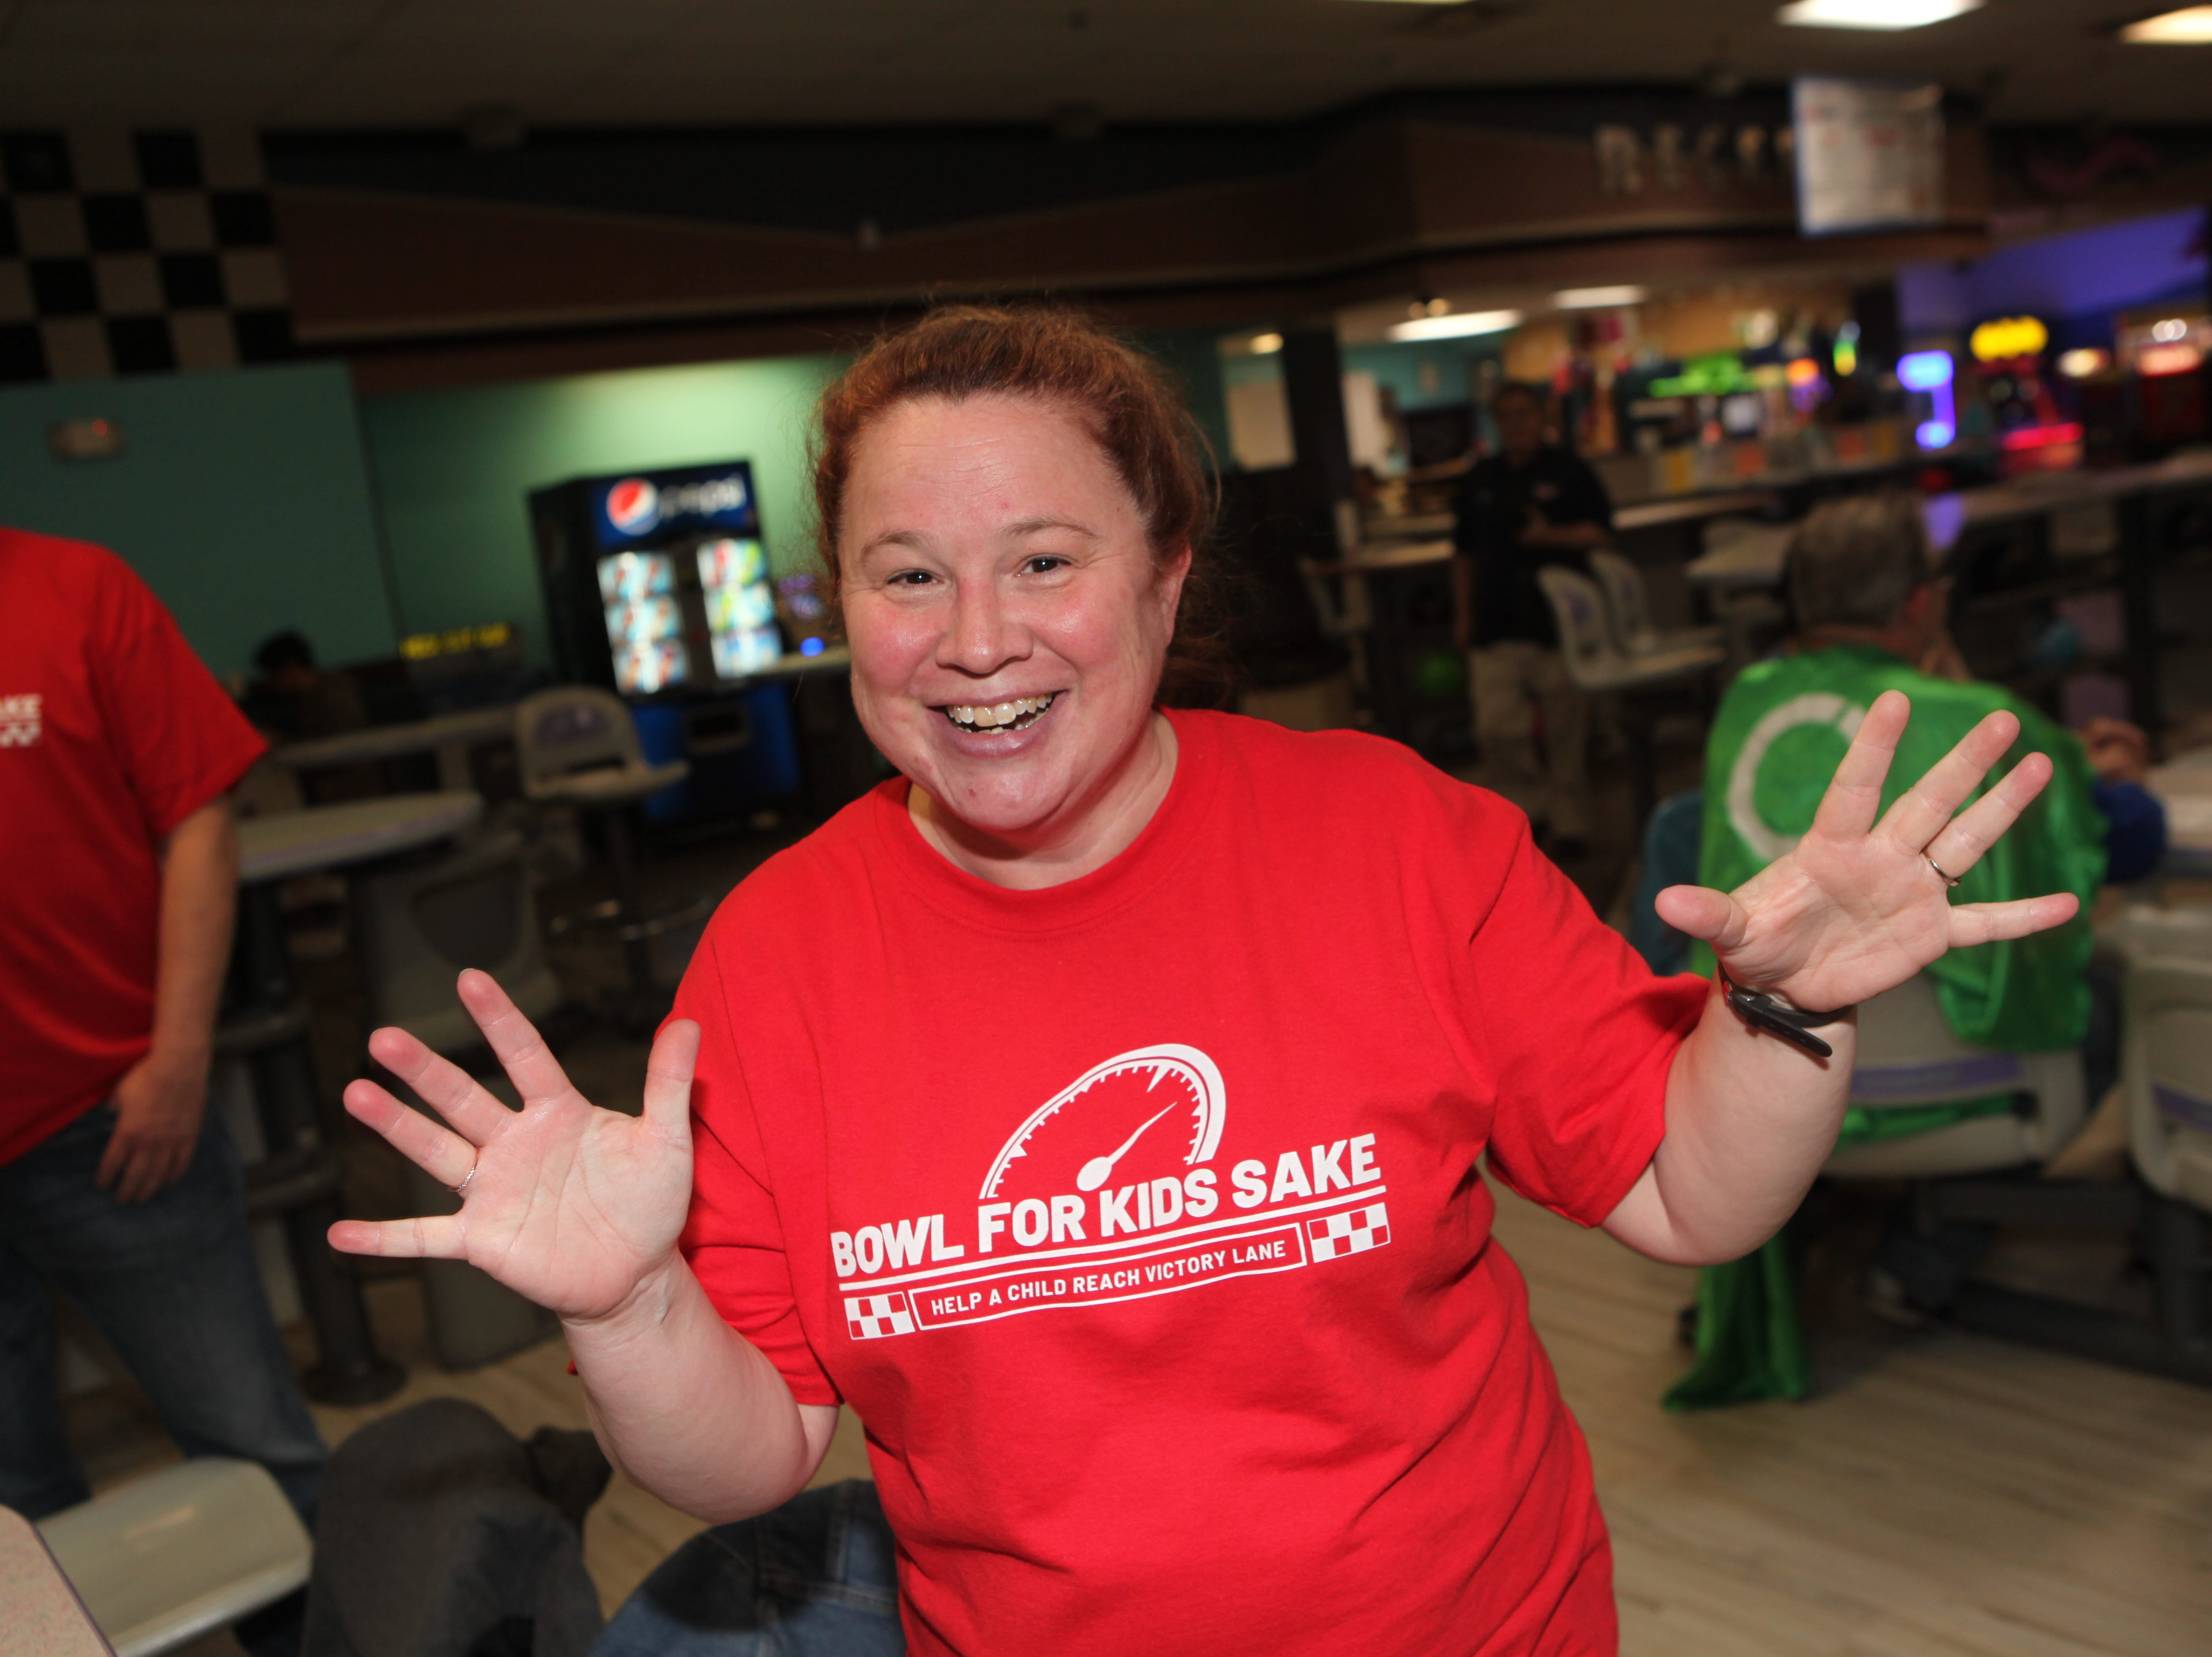 Brandy Jones after a strike at the Big Brothers Big Sisters 2019 Bankers Challenge at the Pinnacle Family Entertainment Center on Tuesday, March 12, 2019.